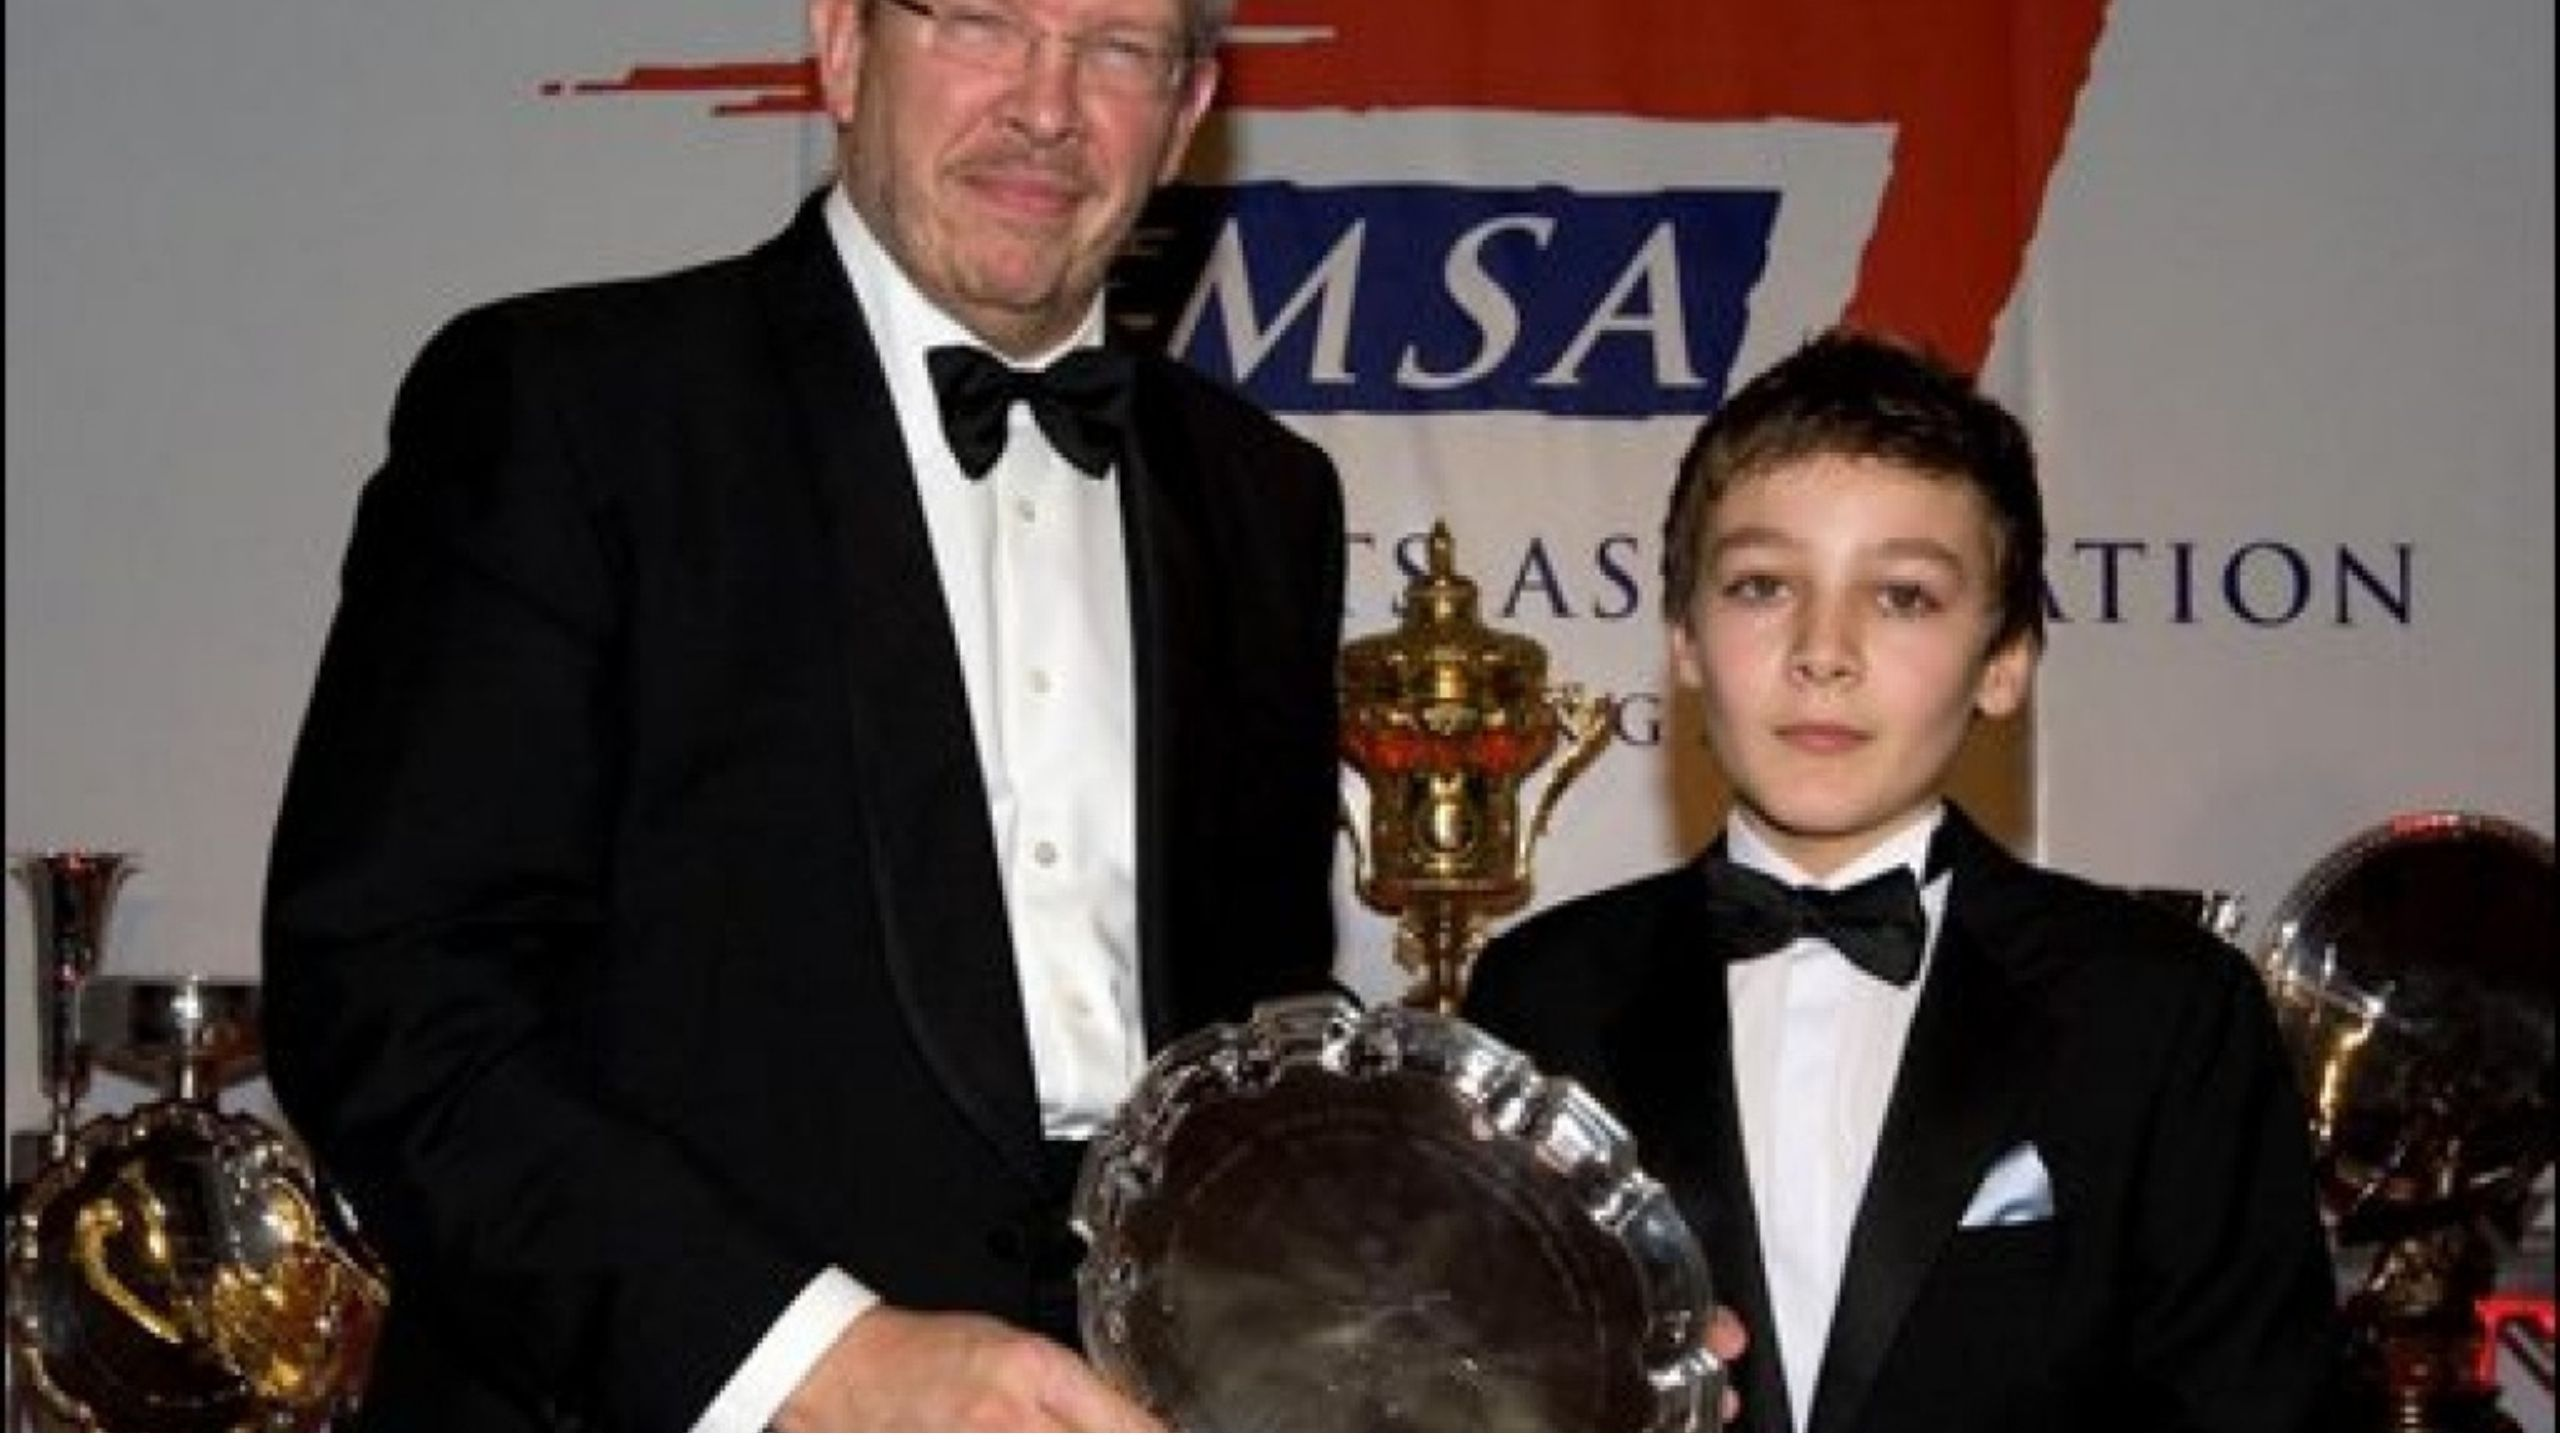 """""""He's F1 world champion material"""" - Ross Brawn with the ultimate praise for George Russell after Sakhir Grand Prix"""